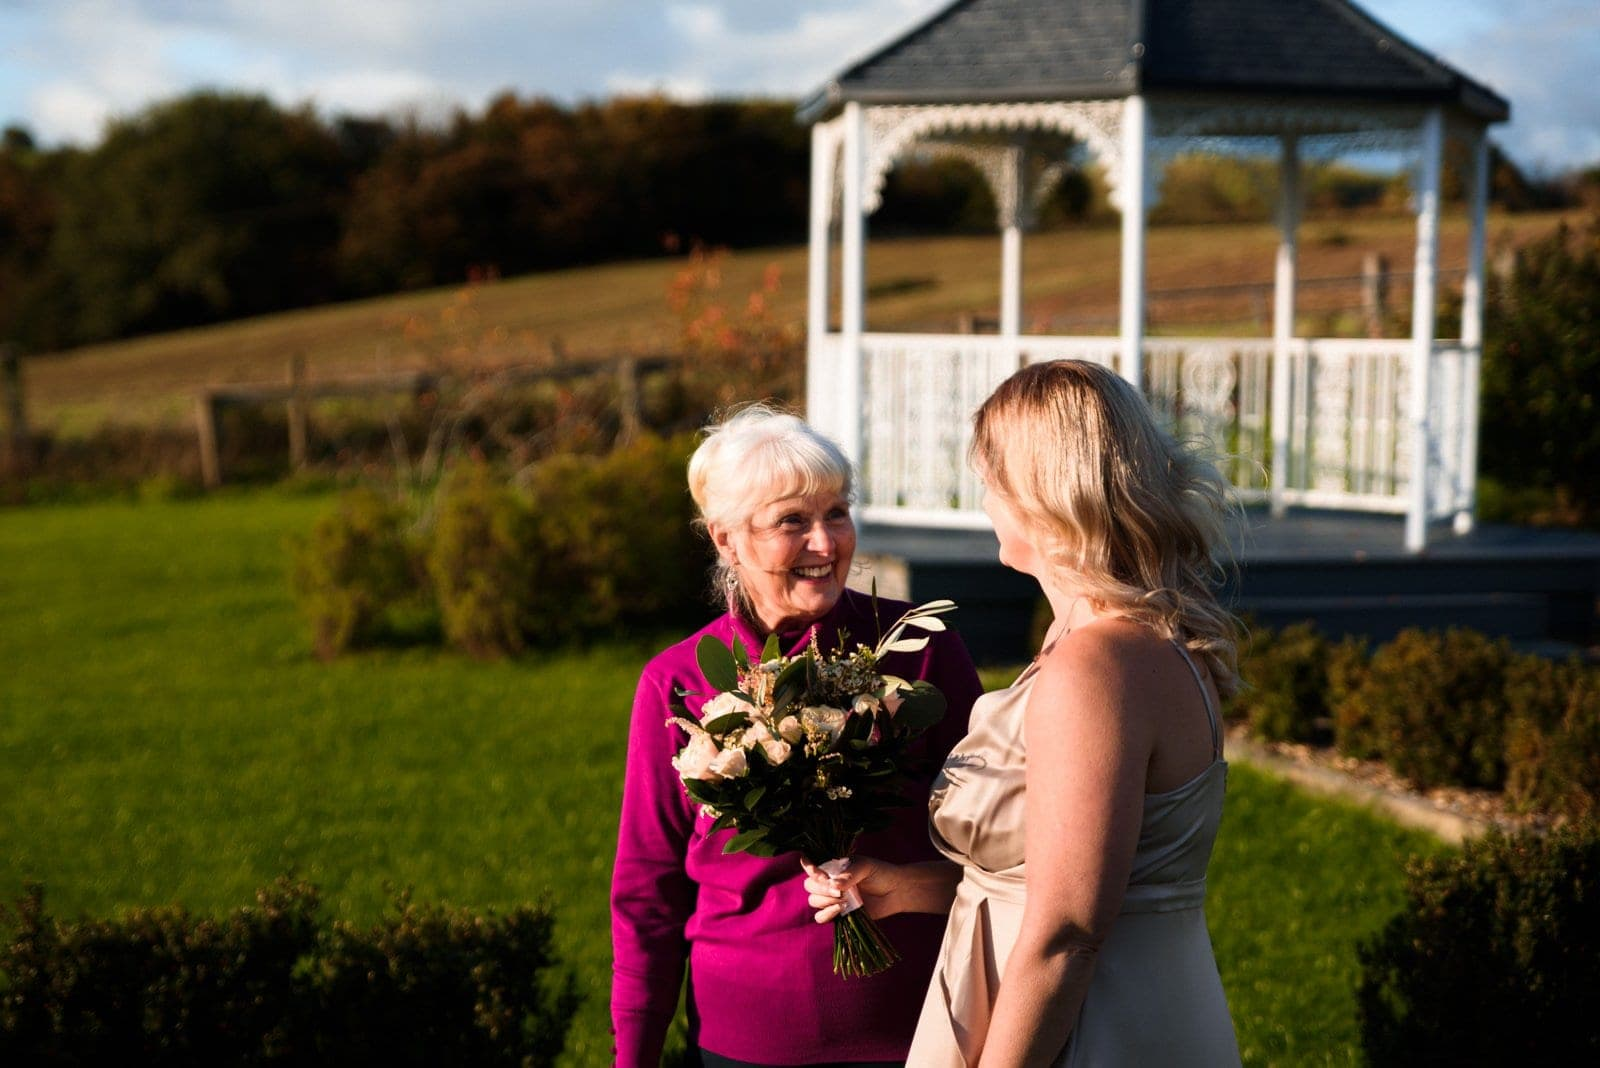 chesterfield wedding photographer, derbyshire wedding photographer, candid wedding photography, wedding photographer near me